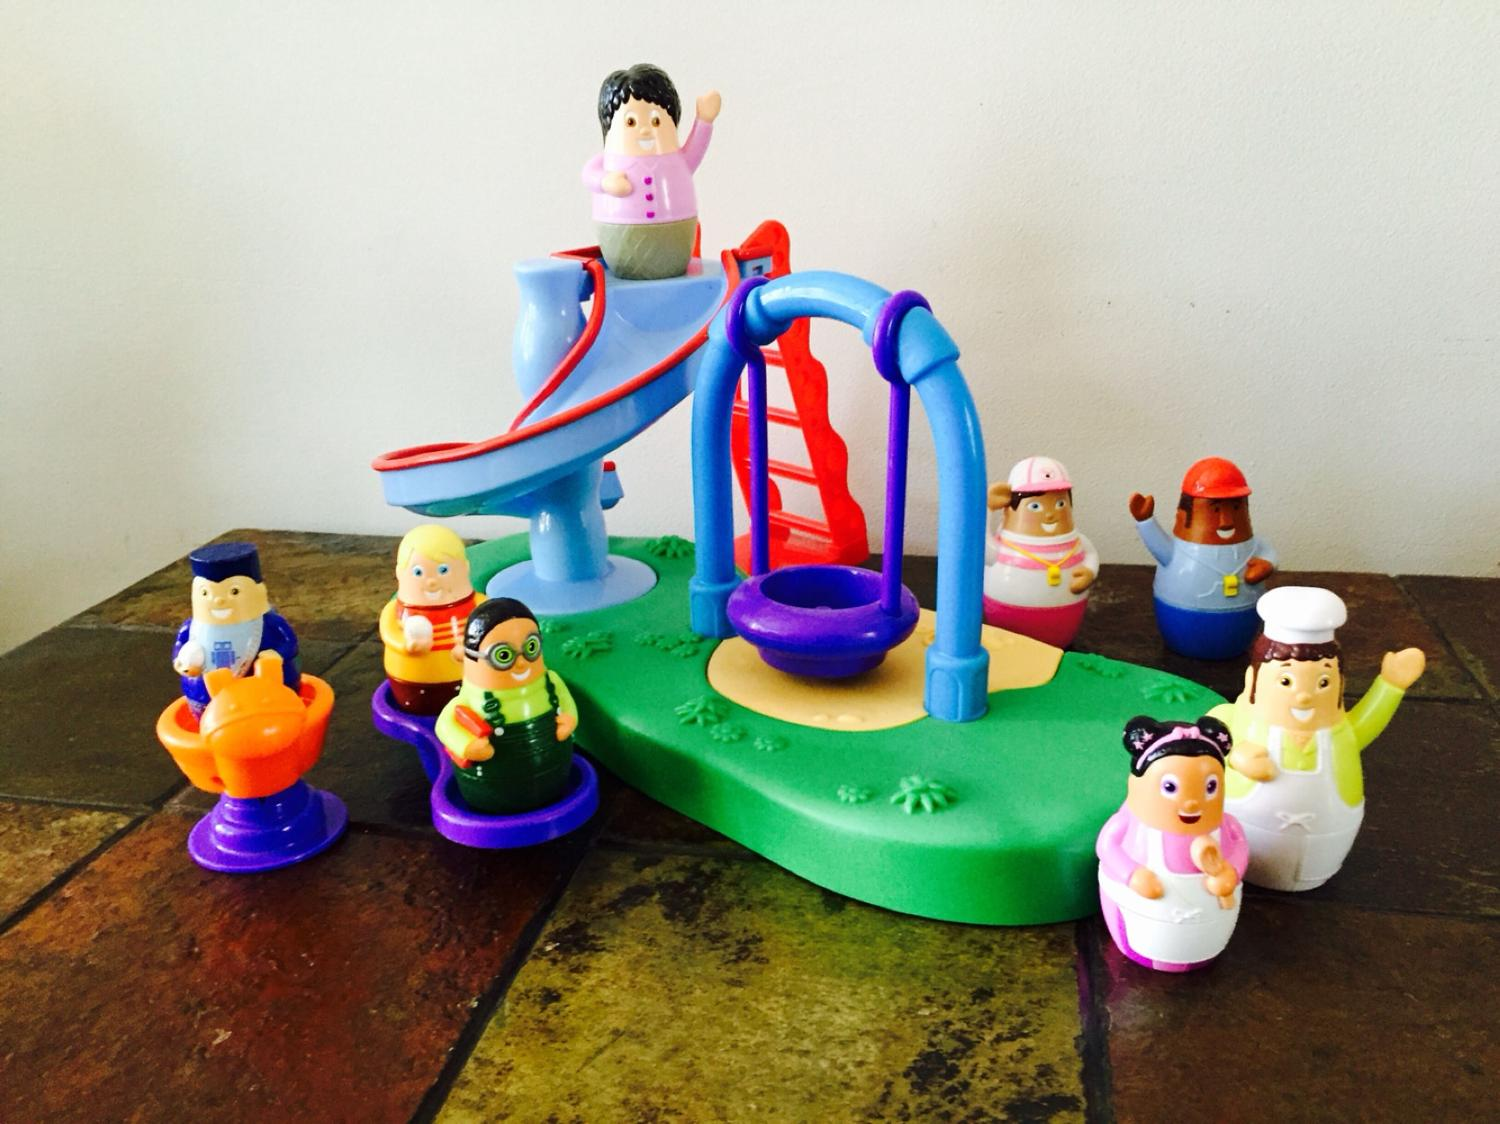 Illa Trol: Find More Higglytown Playground With Extra Higglytown